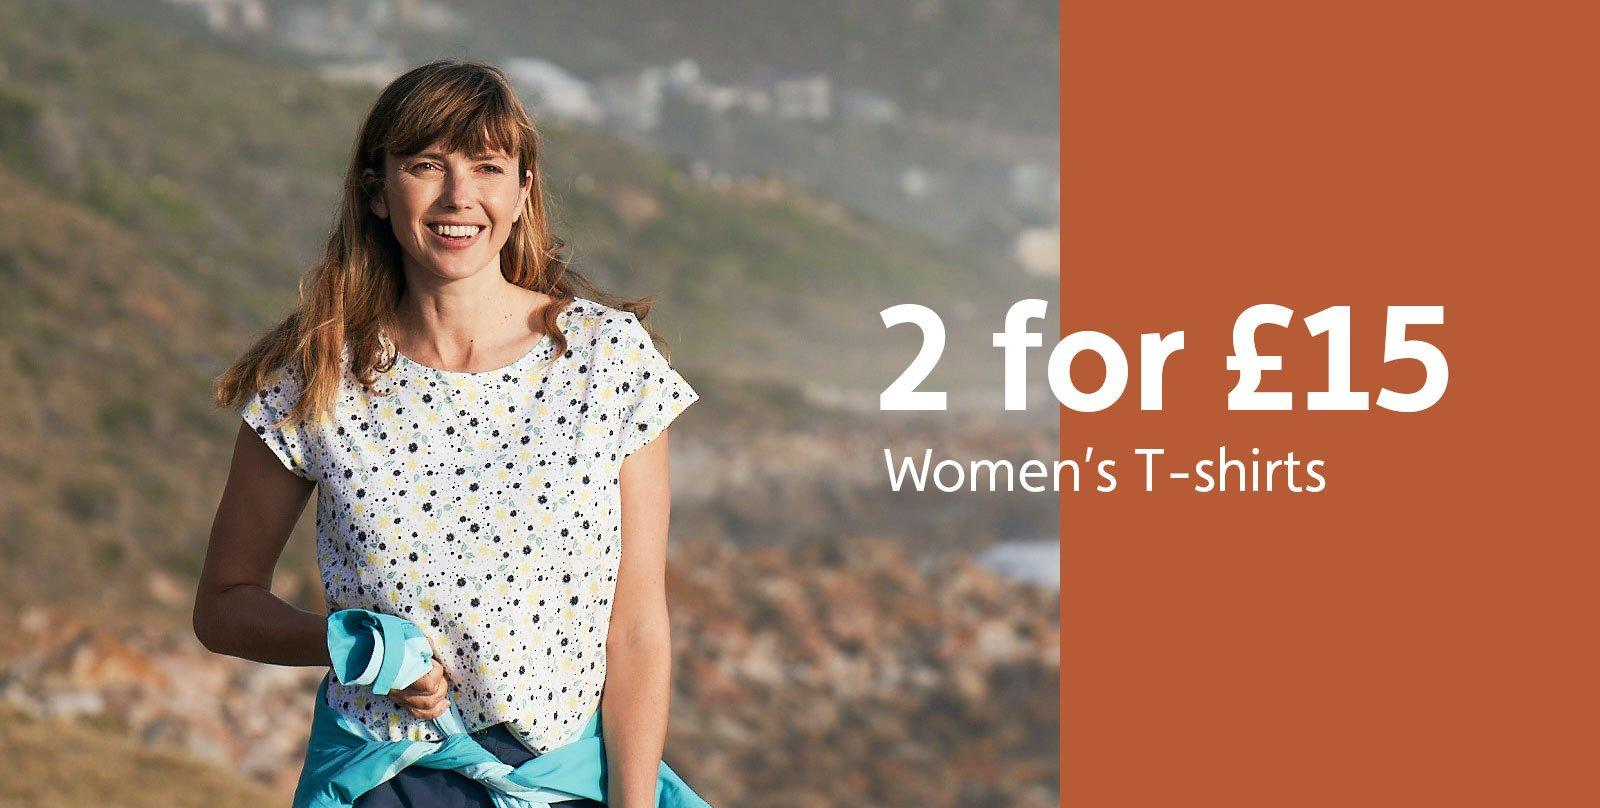 2 for £15 Women's T-Shirts